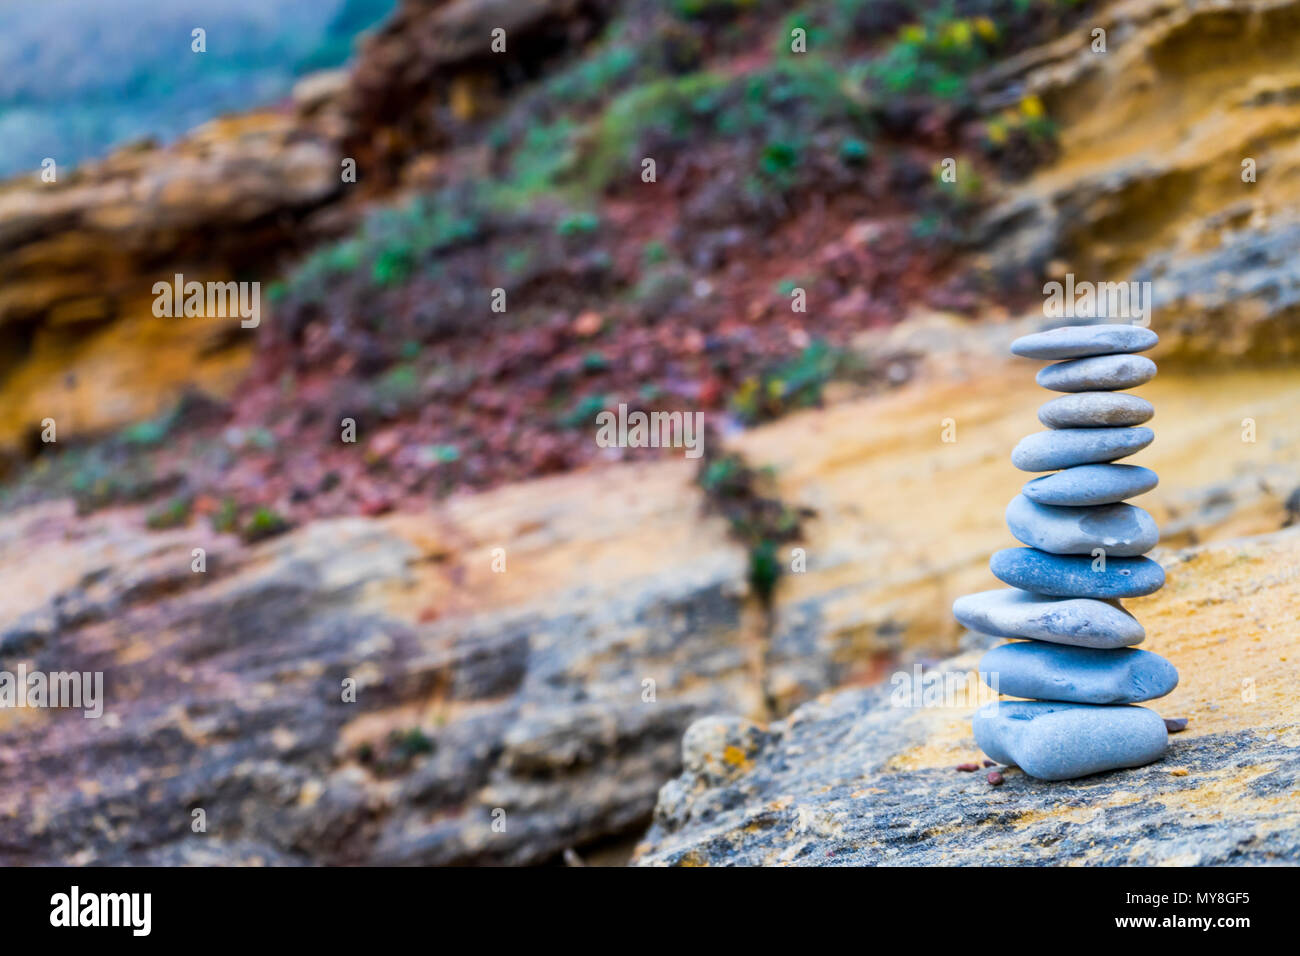 Flat stones stacked on each other zen-like in front of a colorful blurry backdrop - Stock Image